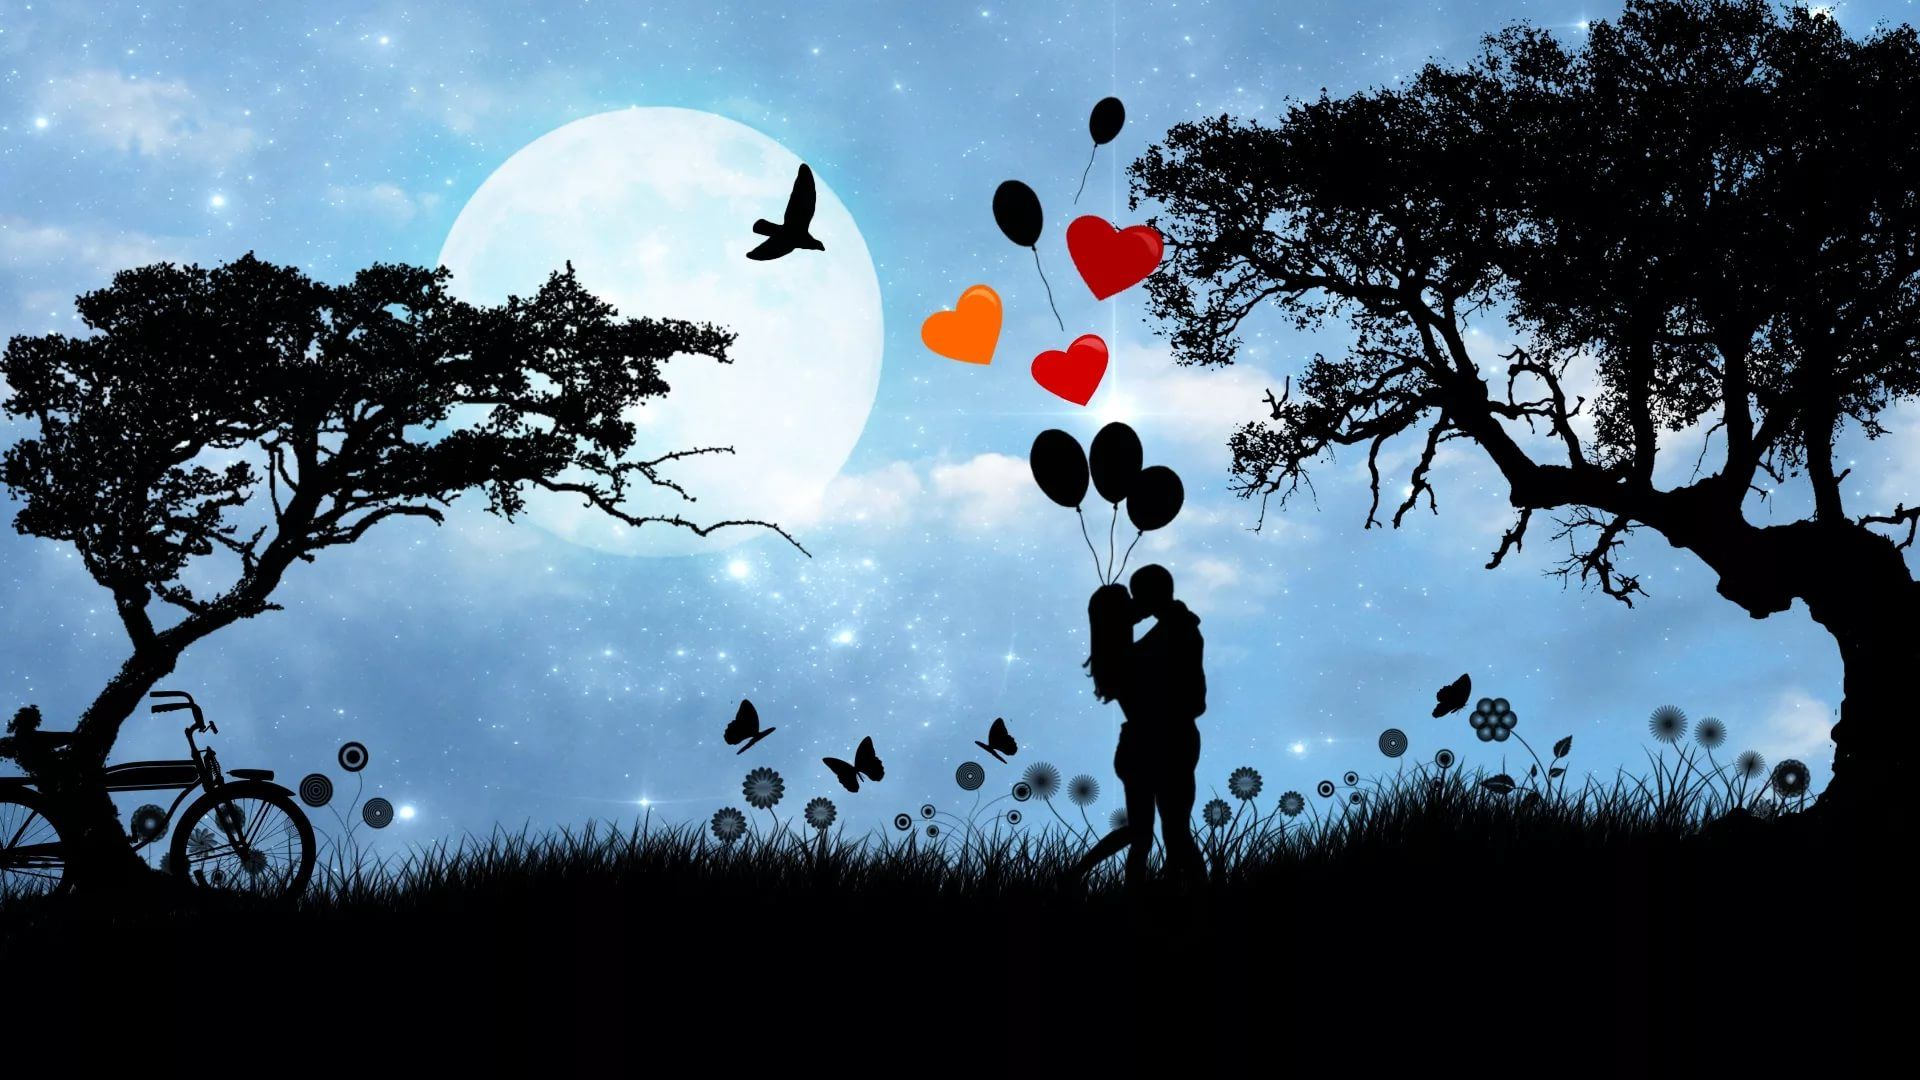 Good Night Love Couple Image desktop